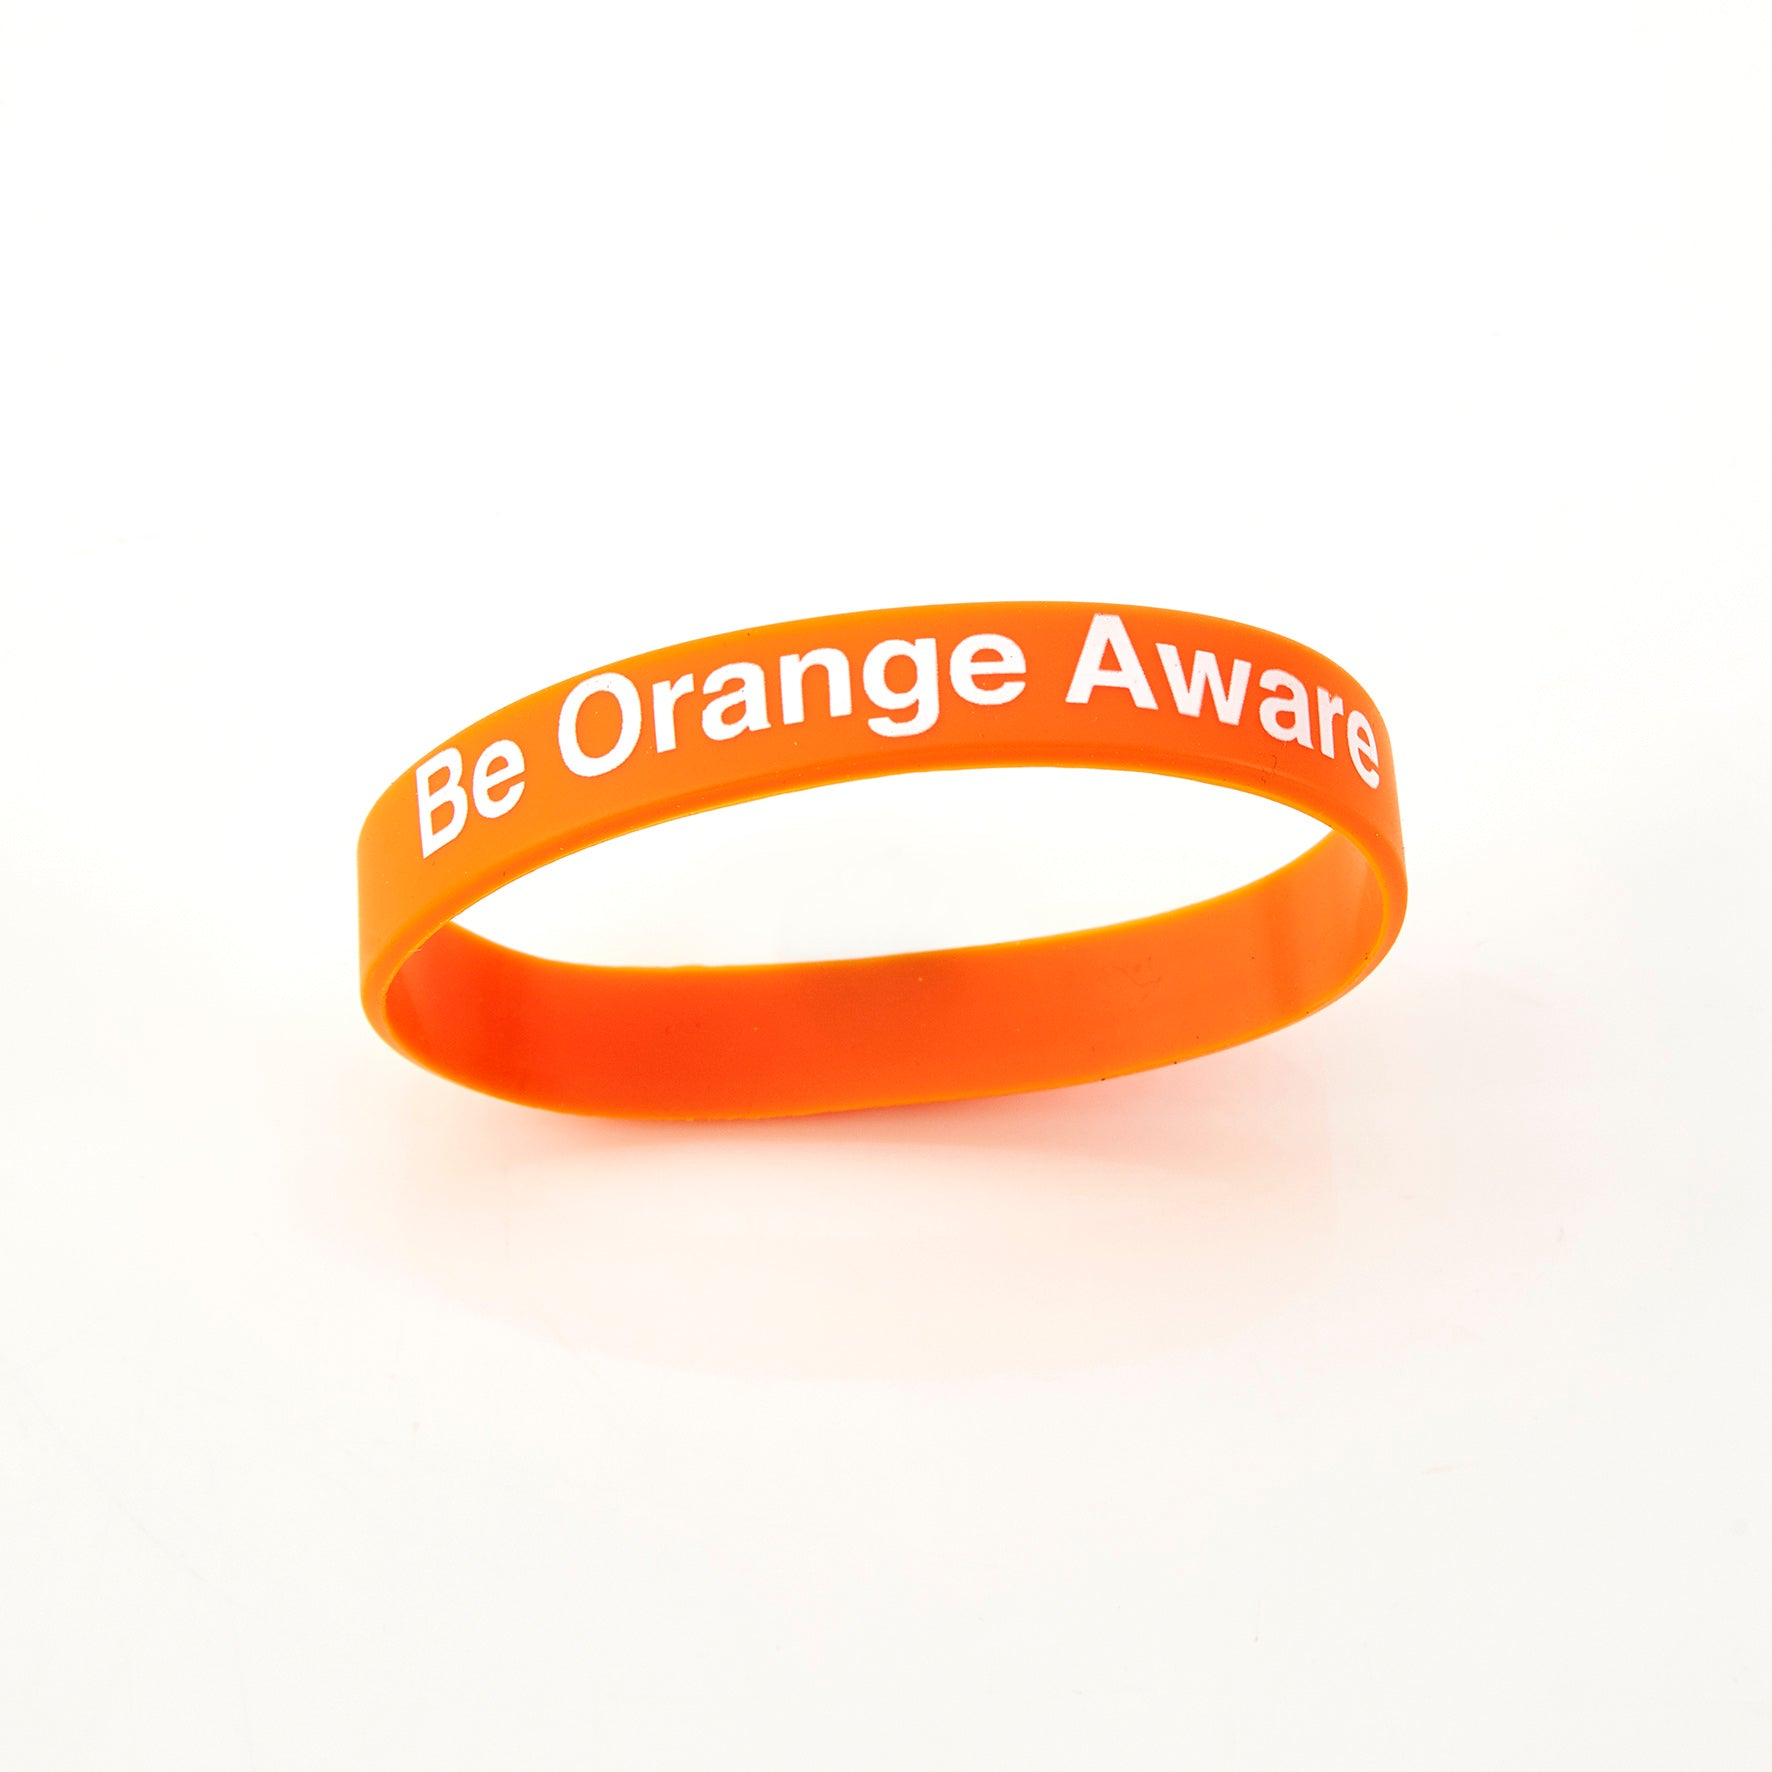 Be Orange Aware Wristband